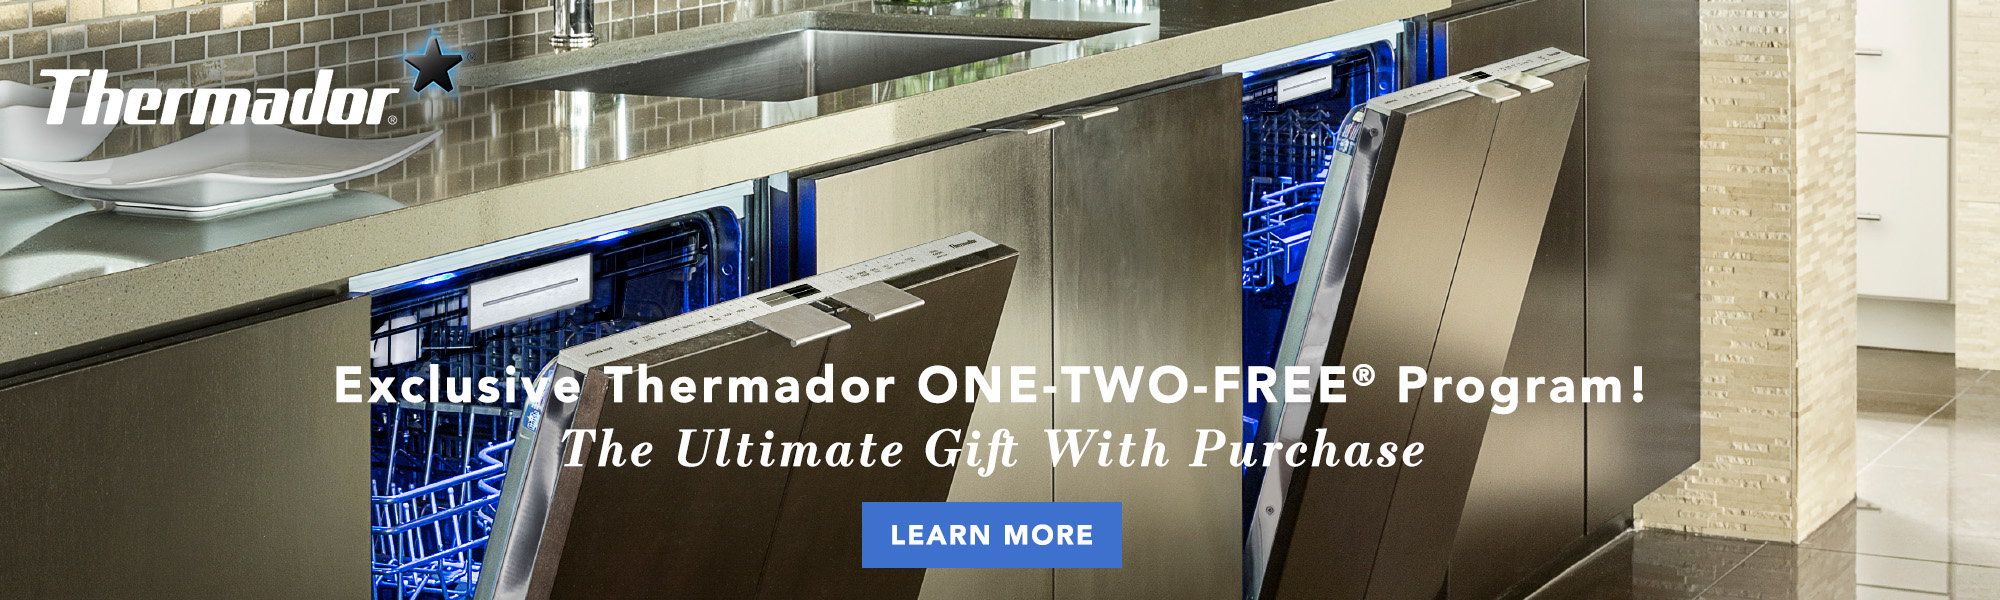 Thermador One Two Frr Promotion